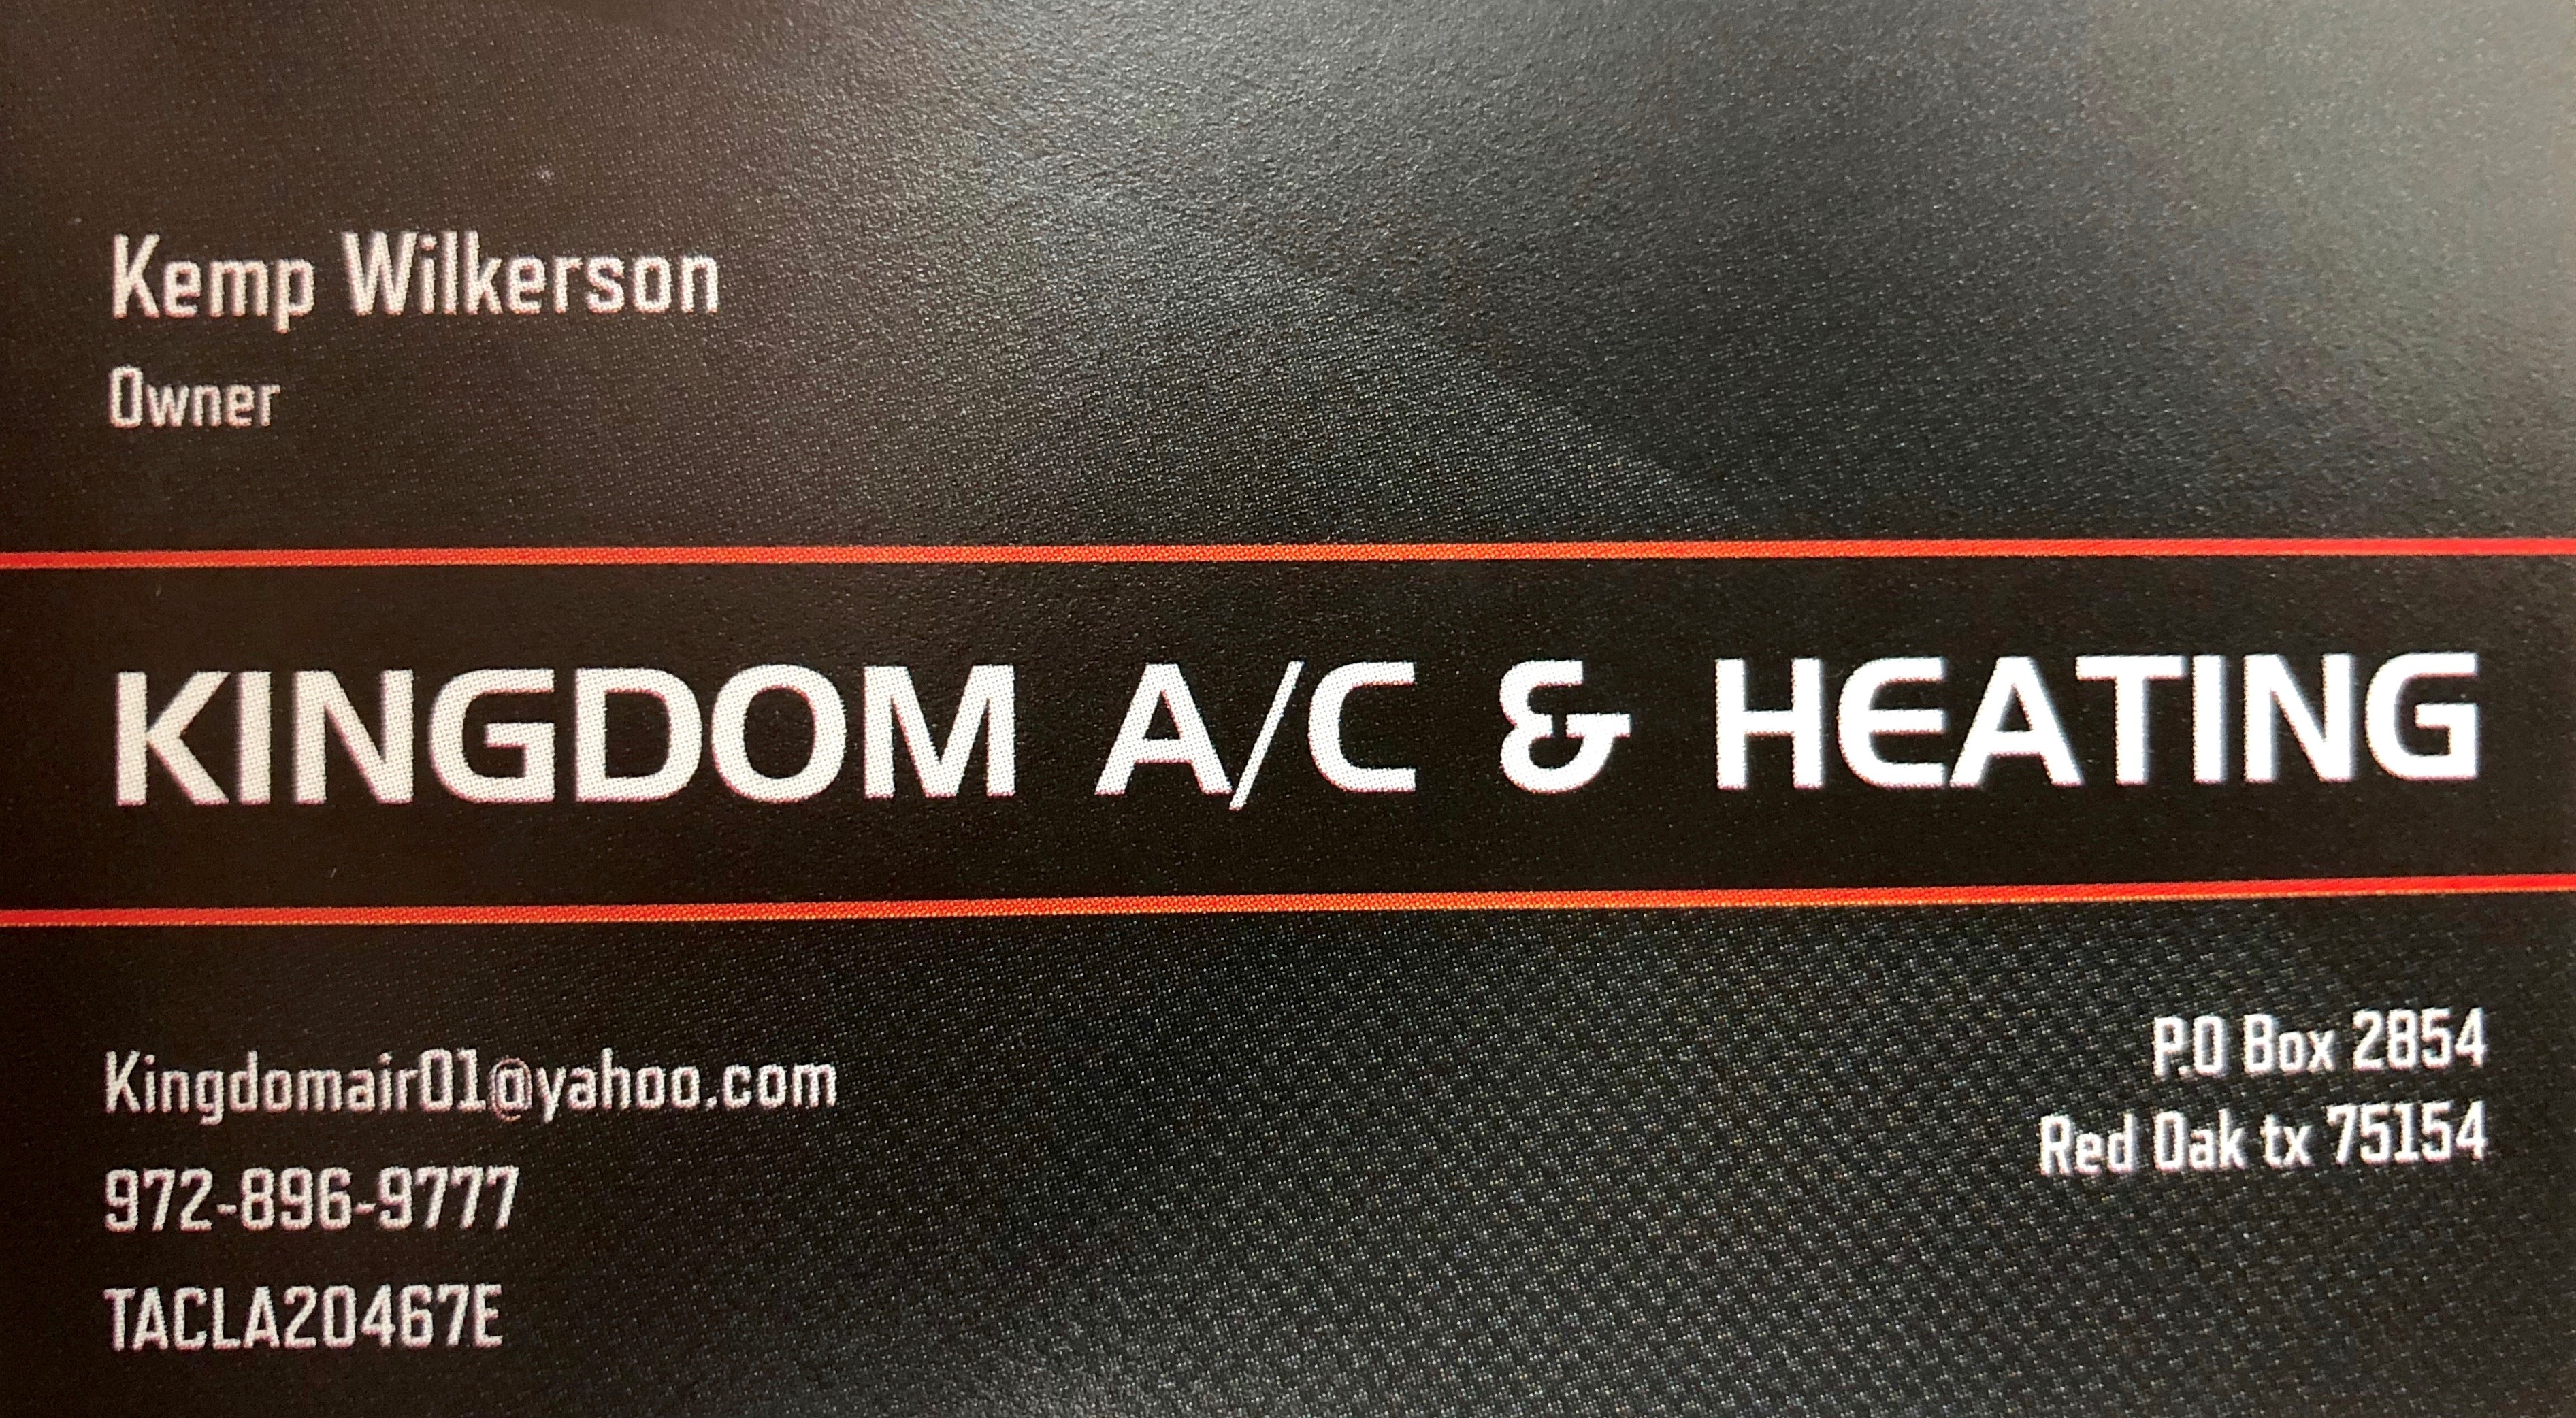 Kingdom A/C & Heating